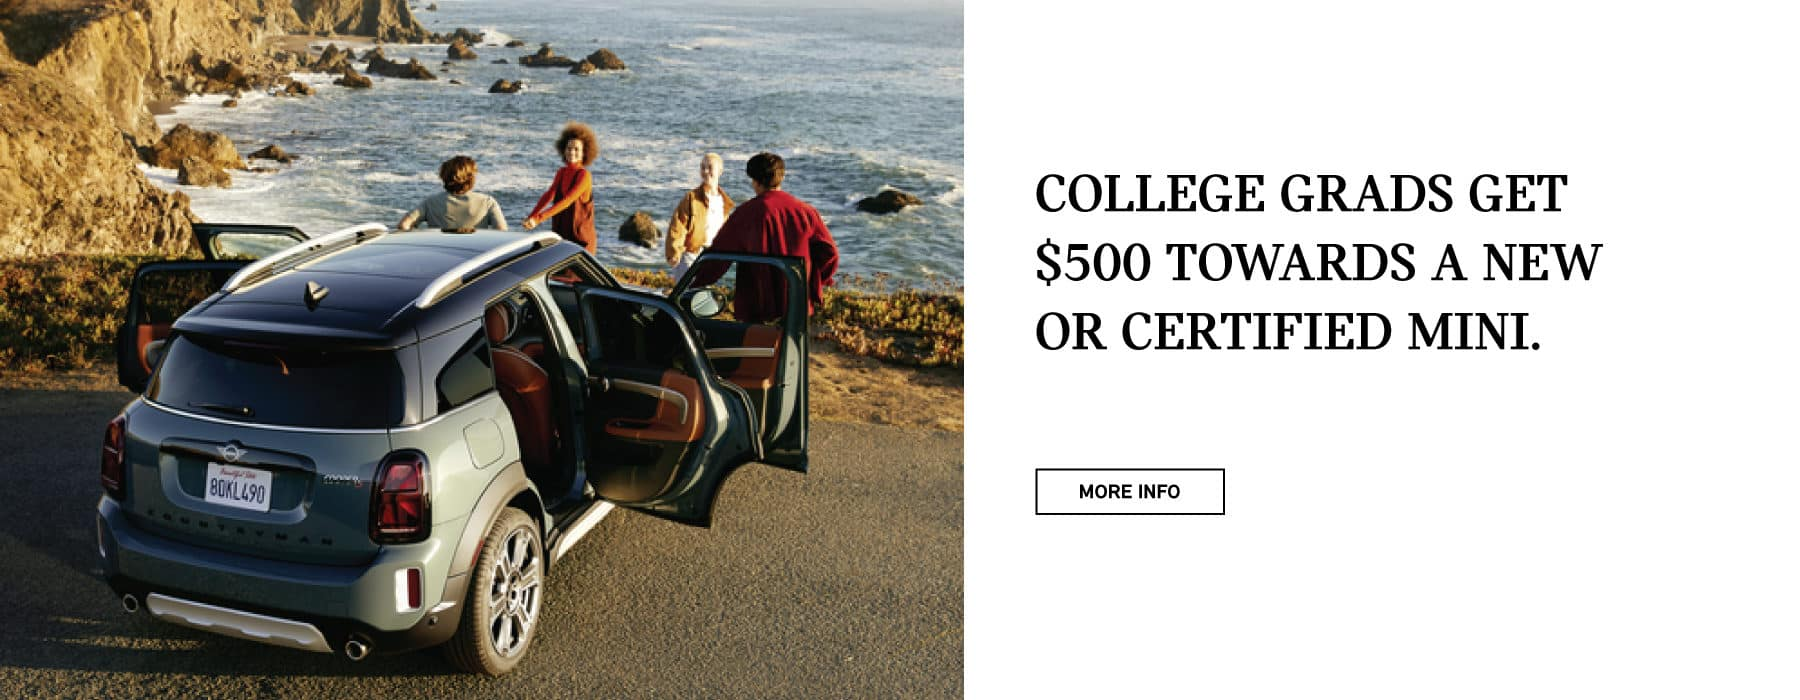 COLLEGE GRADS GET $500 TOWARDS A NEW OR CERTIFIED MINI. CLICK FOR MORE INFO